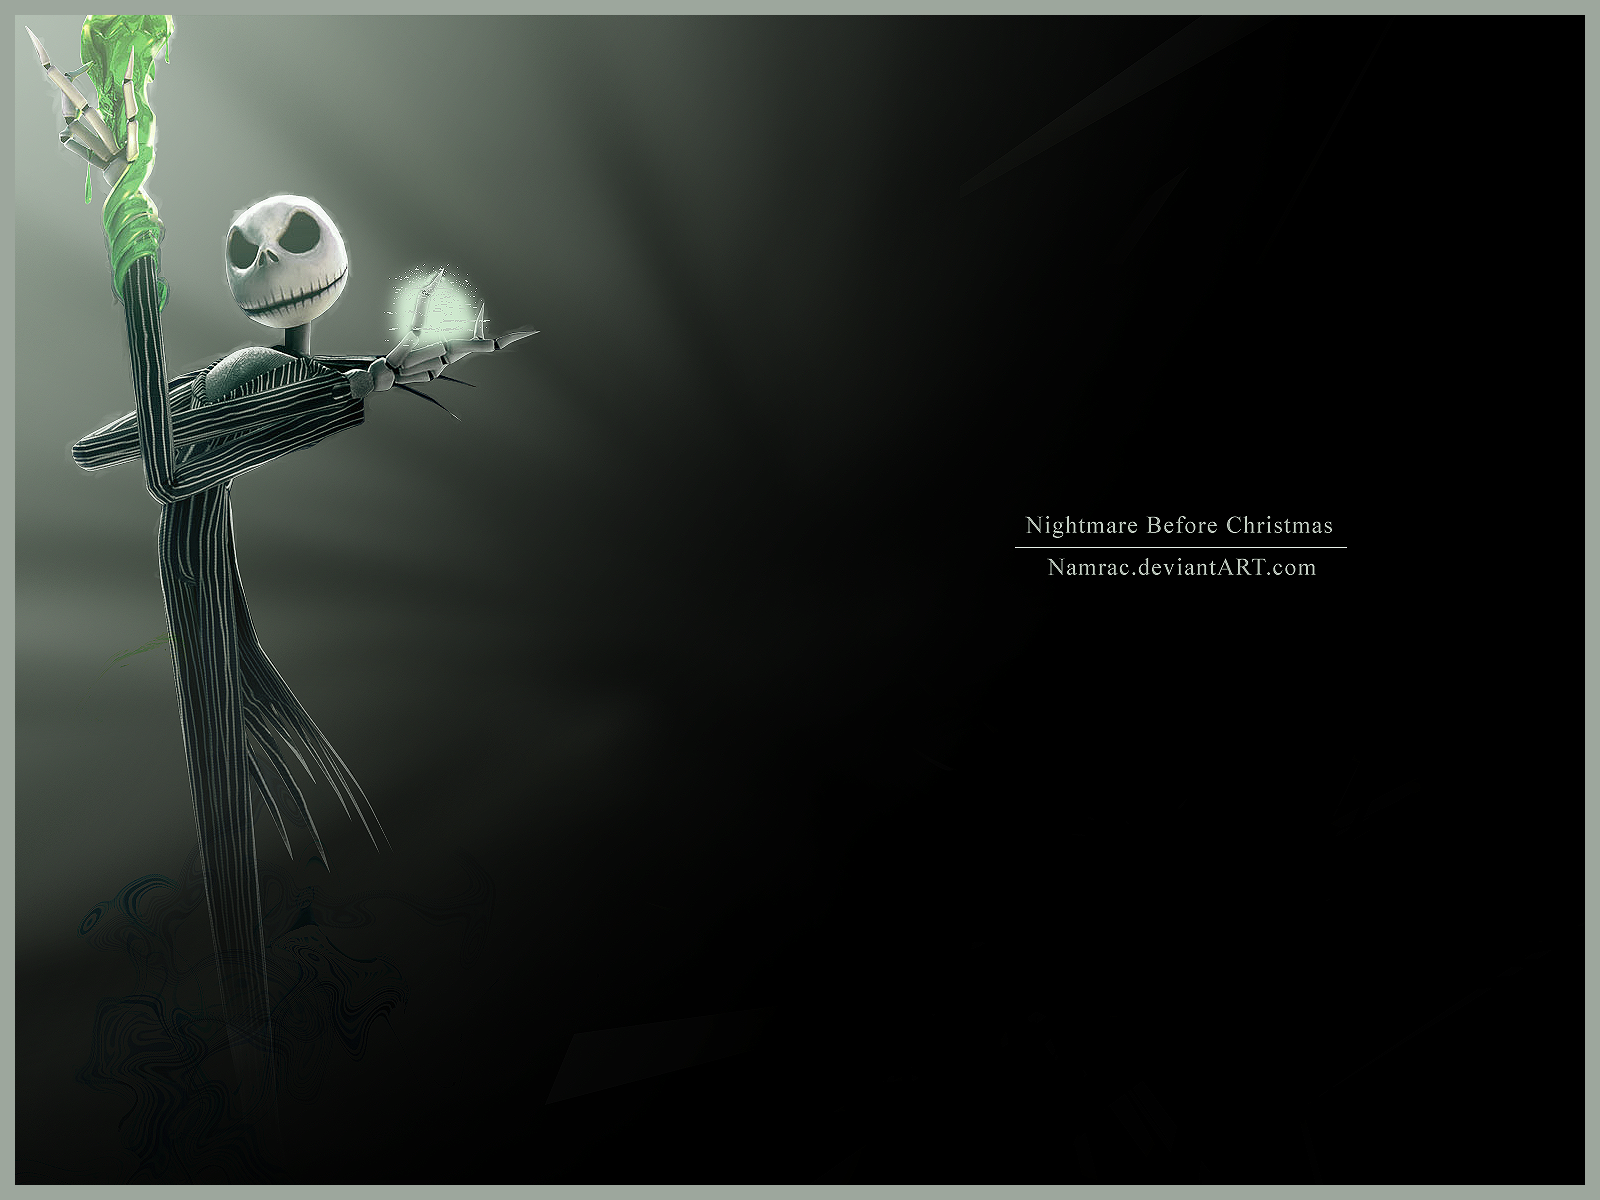 Nightmare Before Christmas by Namrac